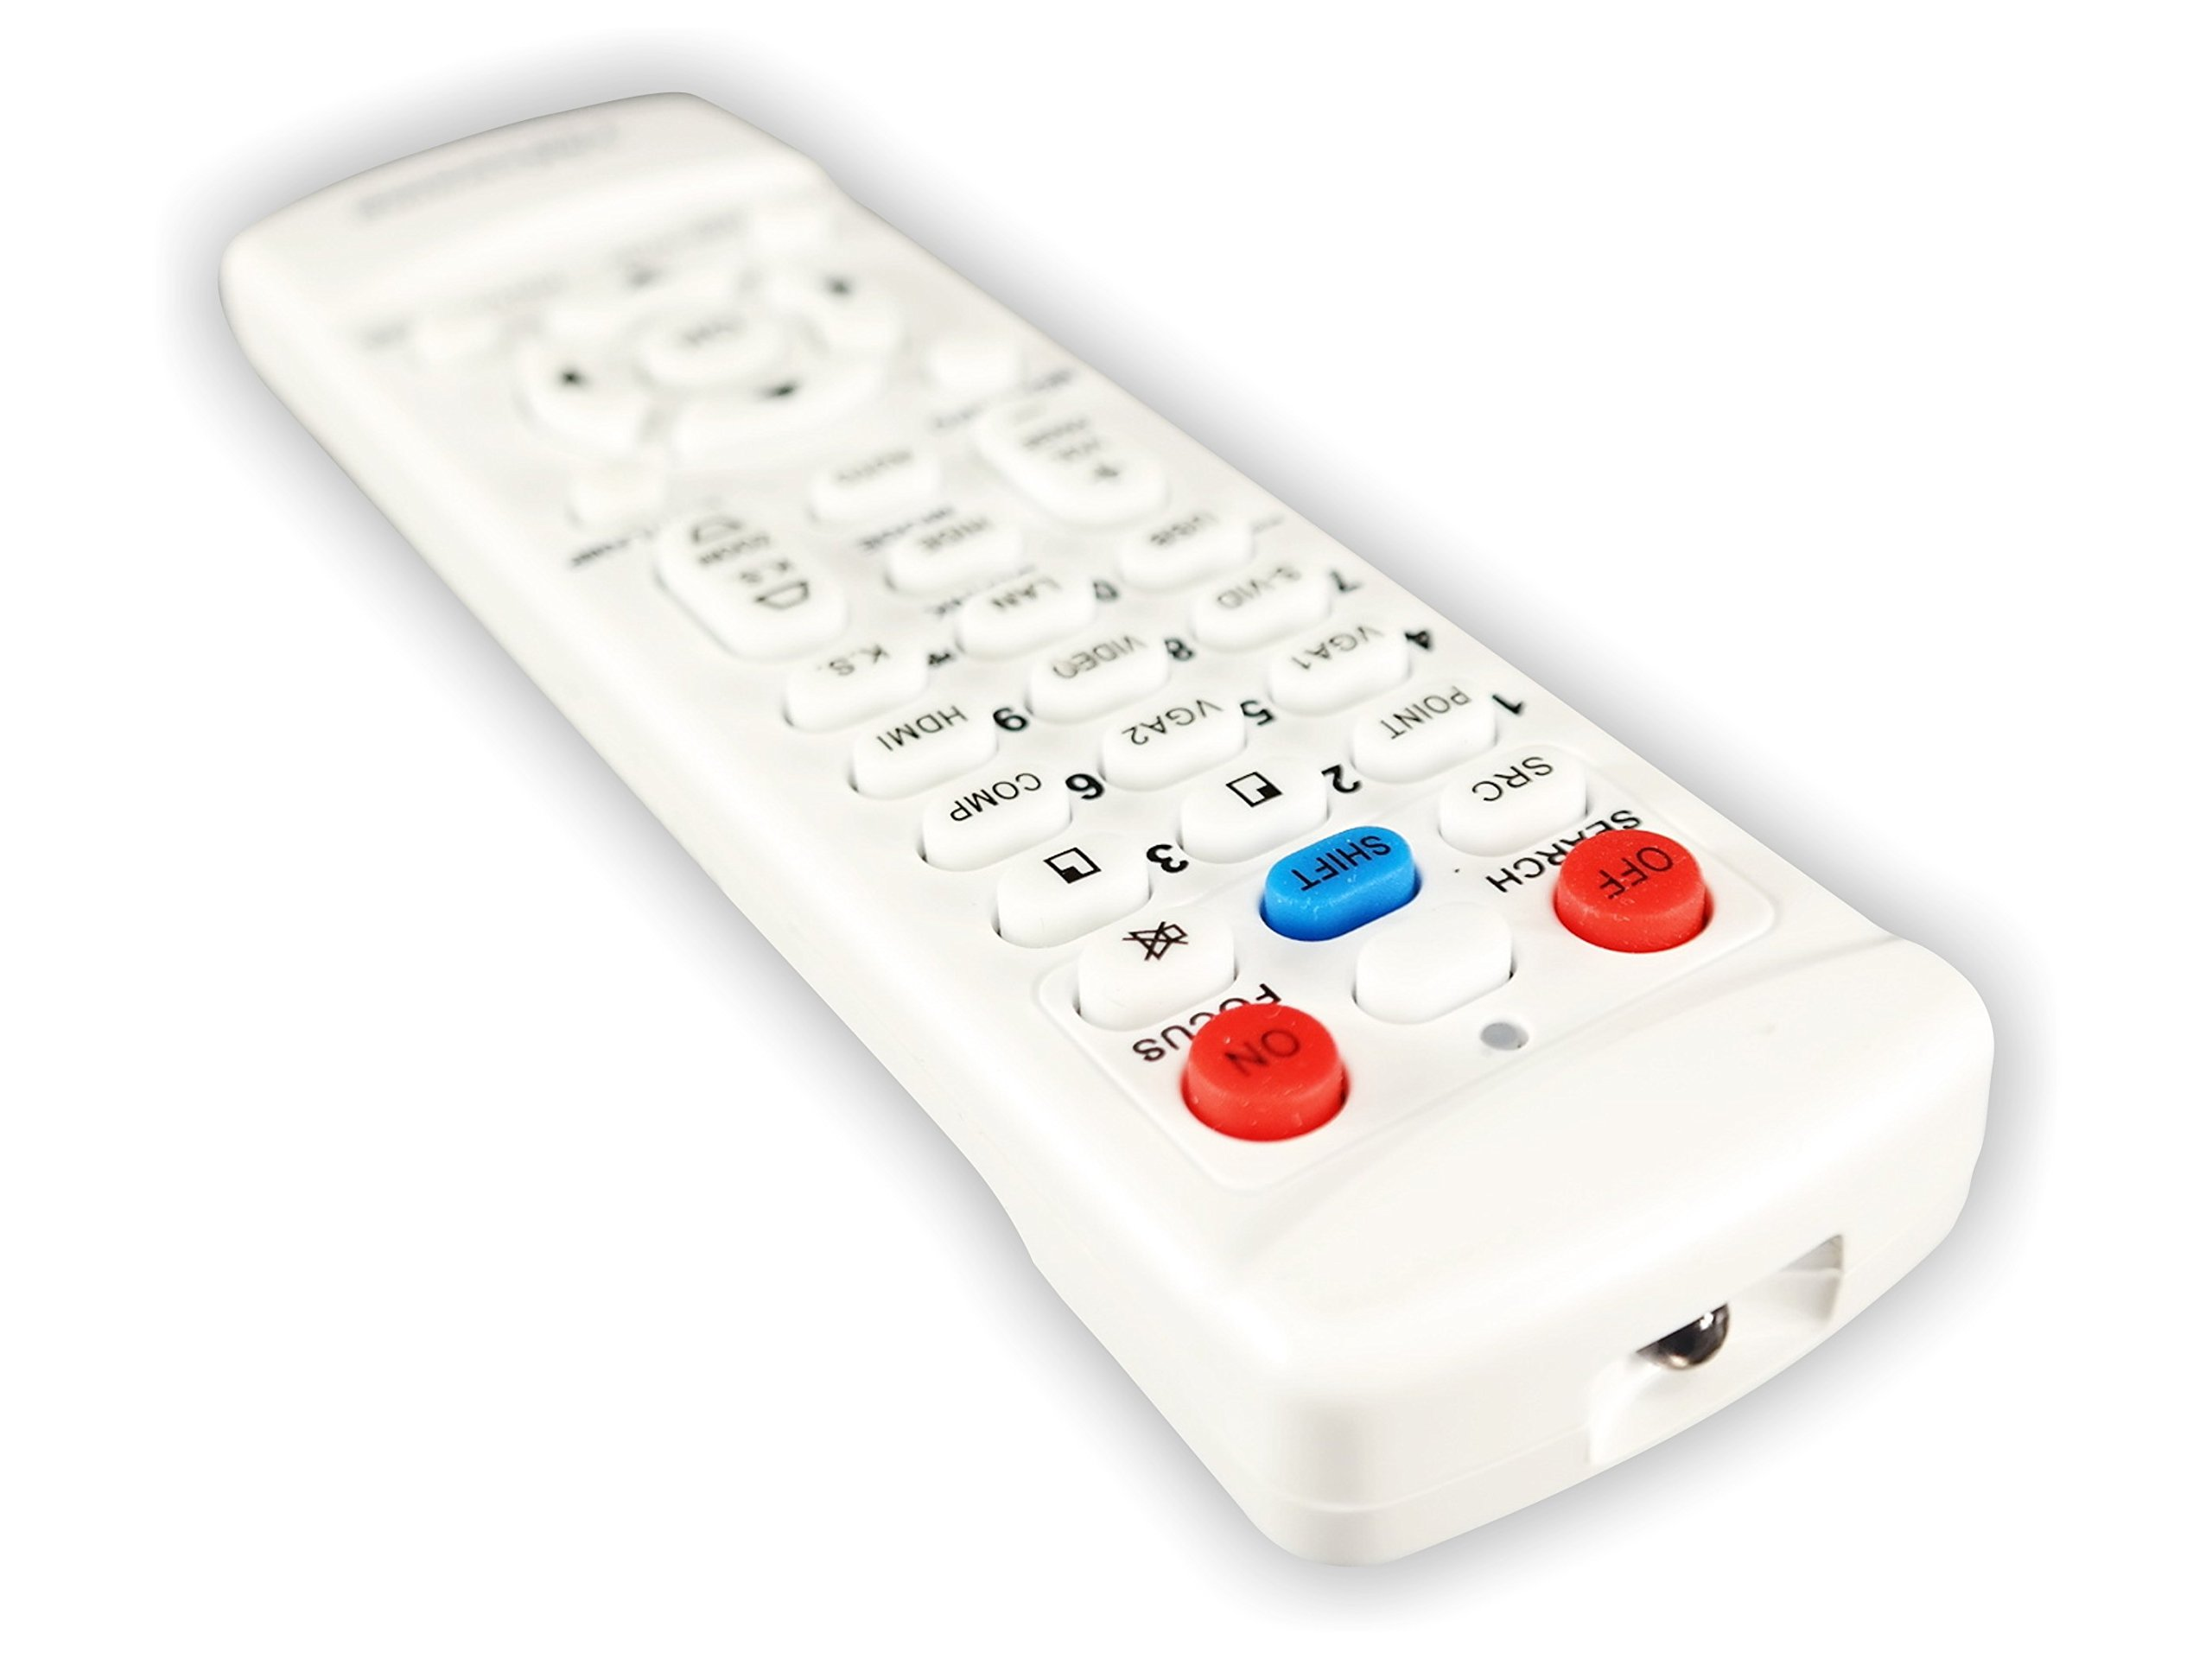 Barco RLM-W8 TeKswamp Video Projector Remote Control (White) by Tekswamp (Image #3)